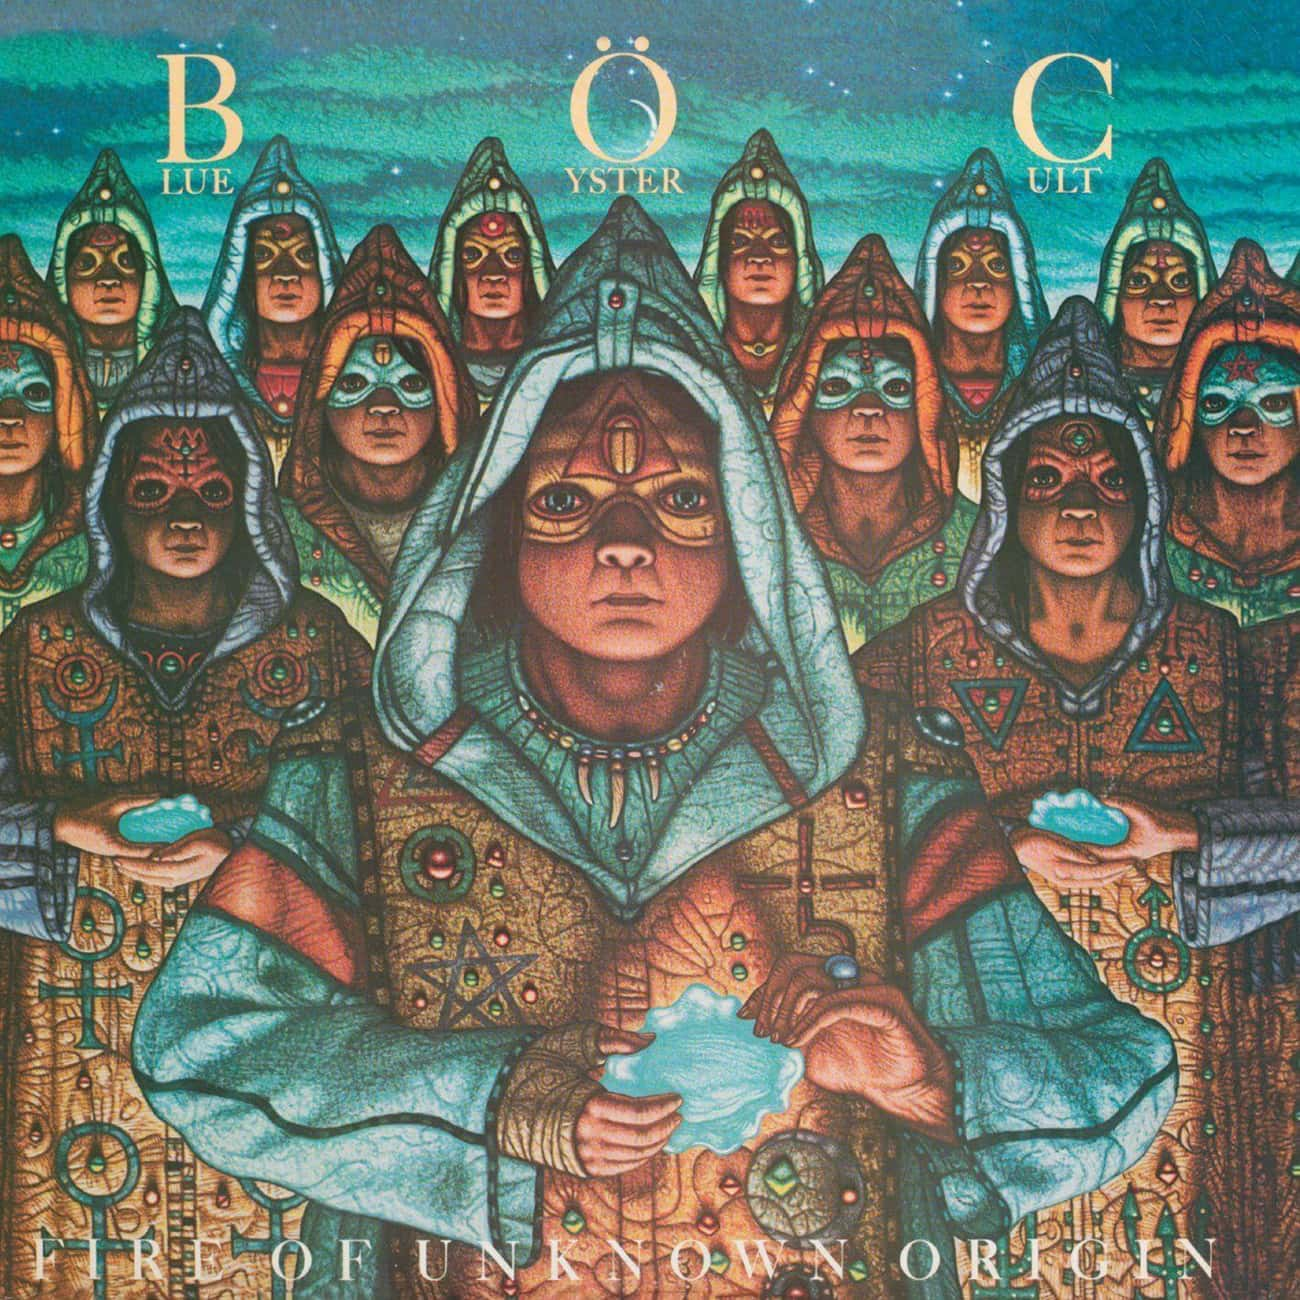 Fire of Unknown Origin is listed (or ranked) 3 on the list The Best Blue Öyster Cult Albums, Ranked